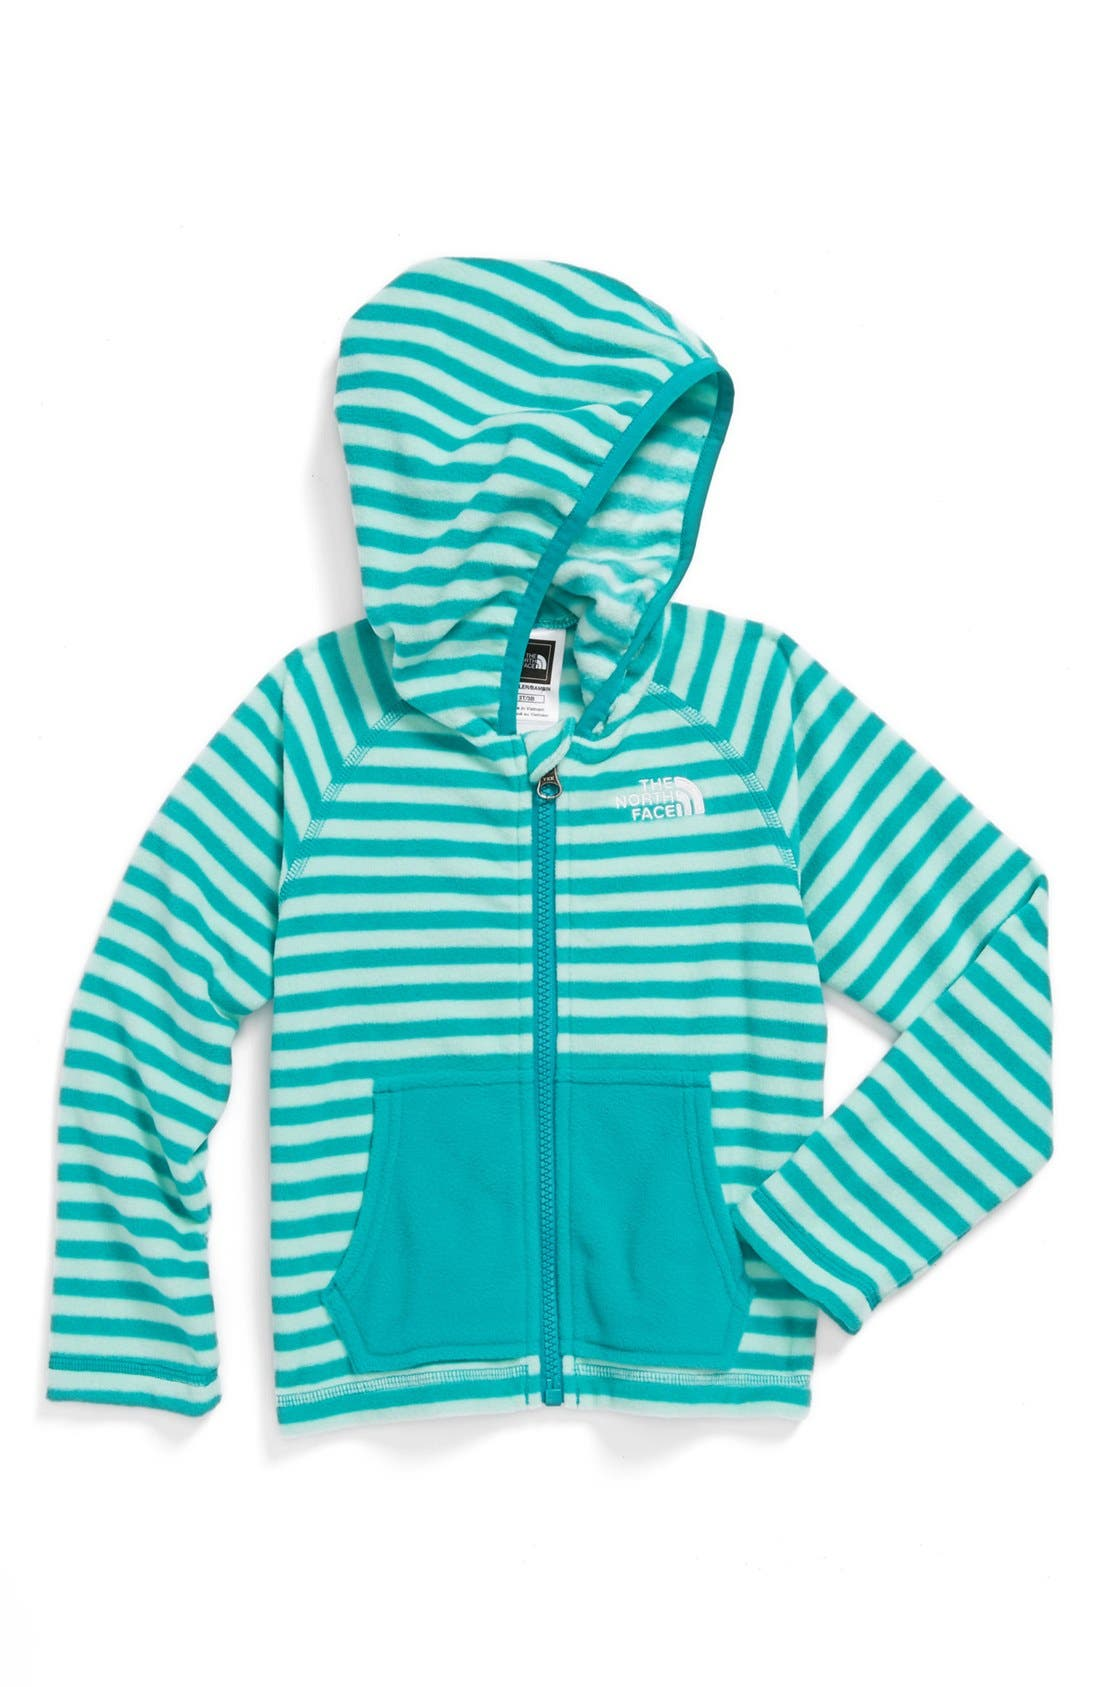 Main Image - The North Face 'Novelty Glacier' Full Zip Fleece Hoodie (Toddler Boys)